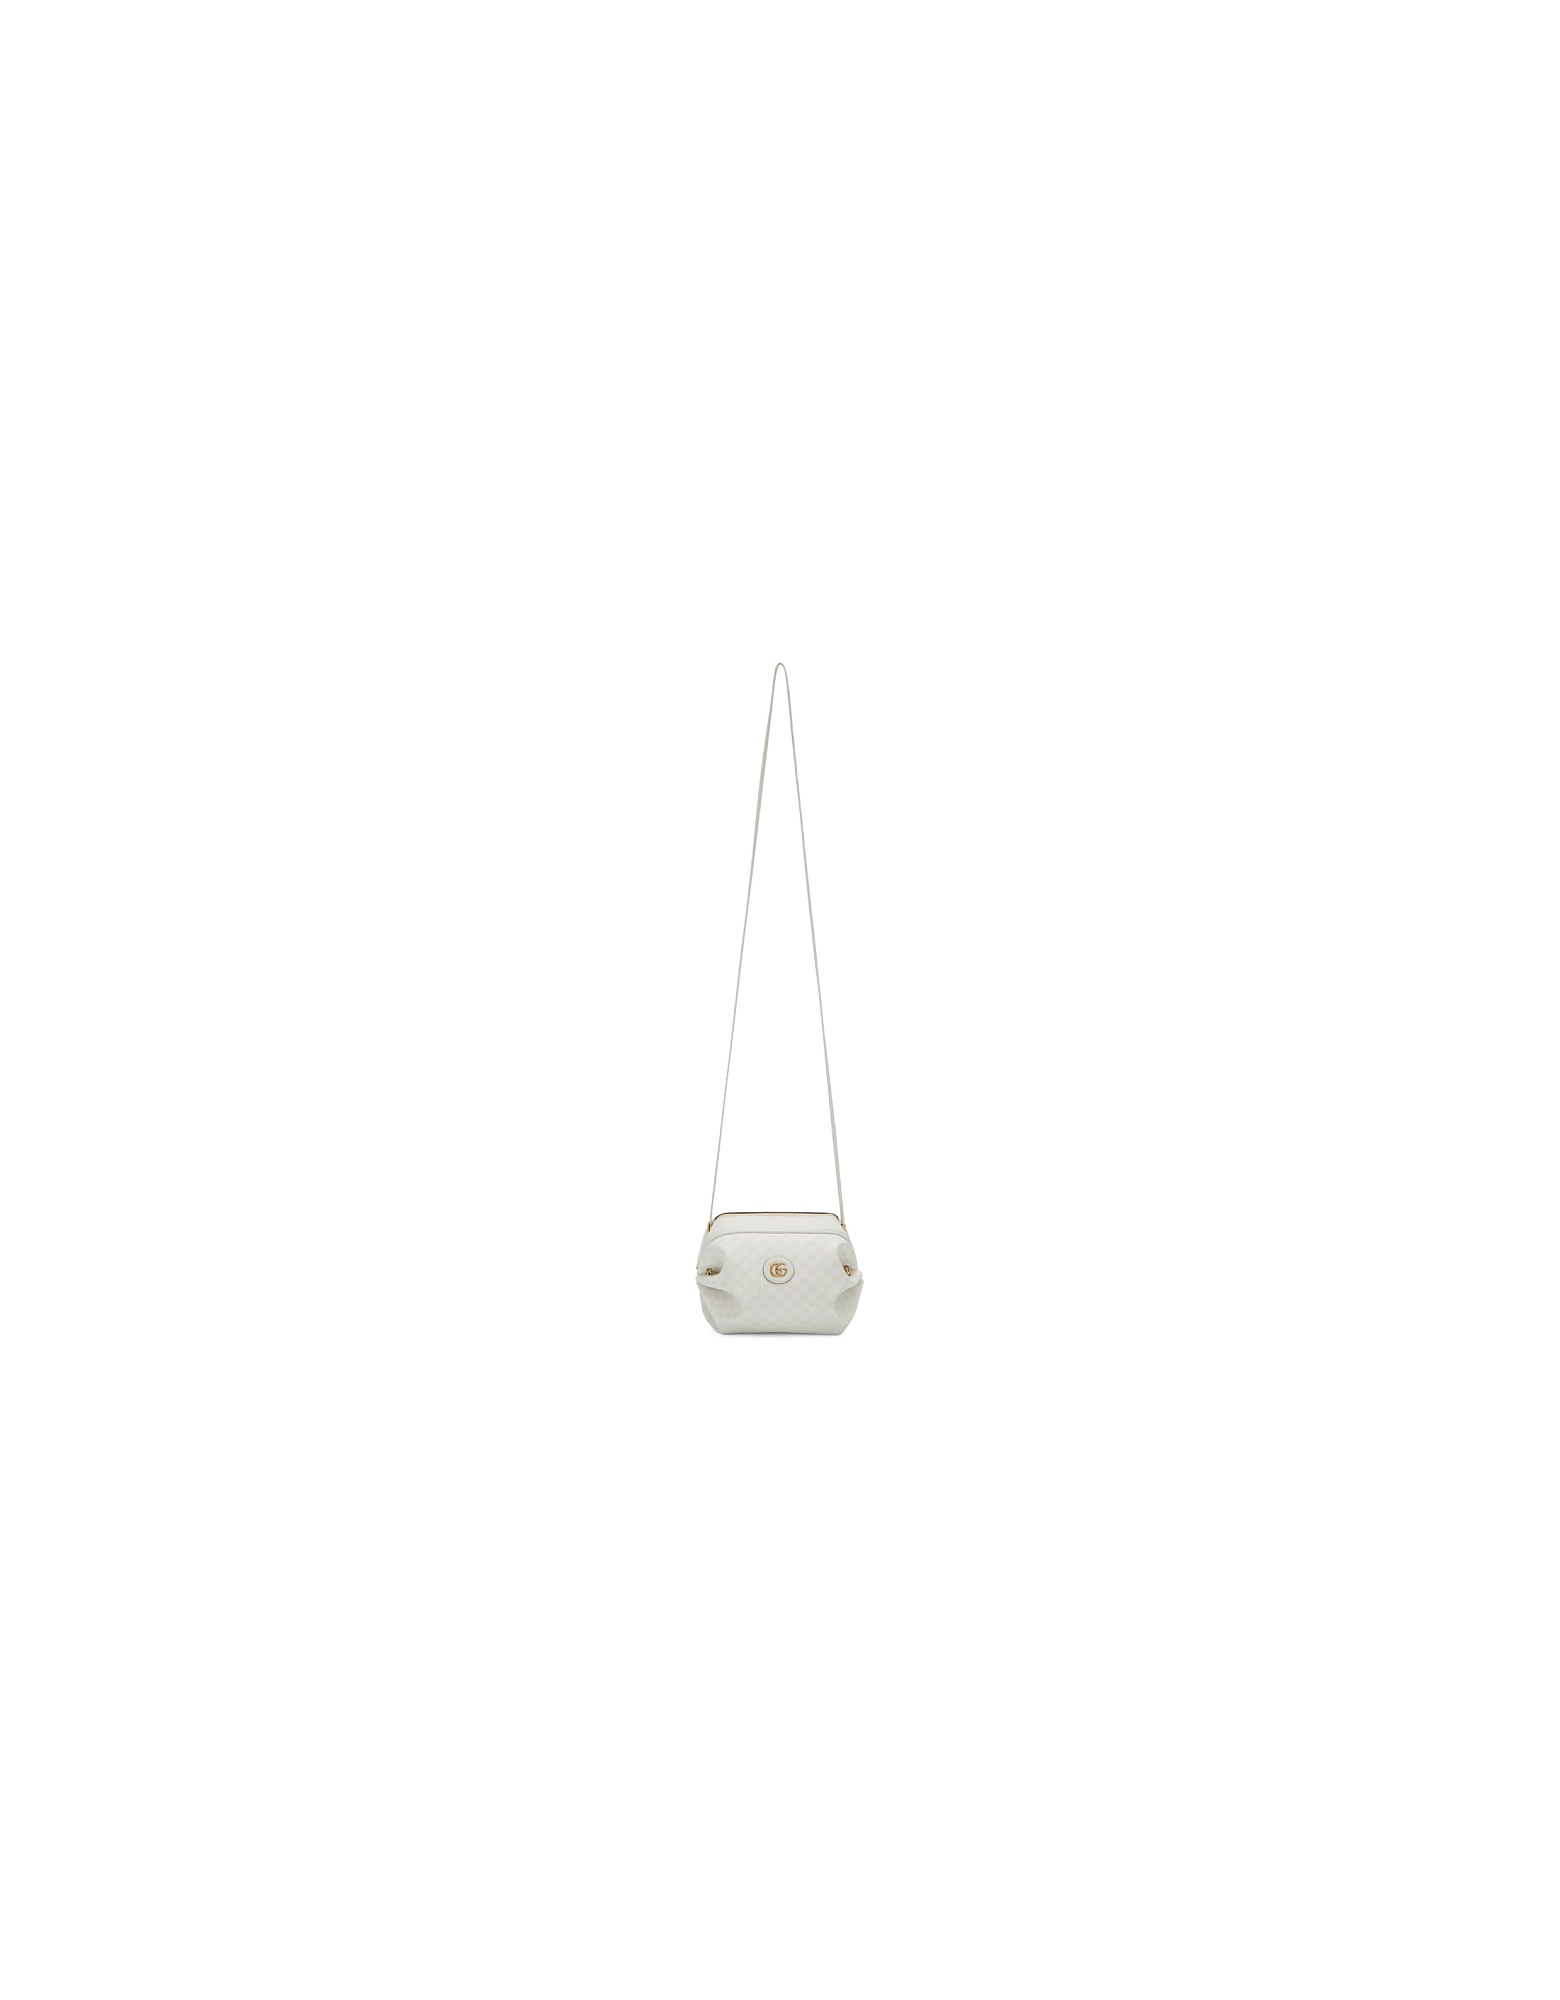 Gucci Designer Handbags, White Mini New Candy Crossbody Bag